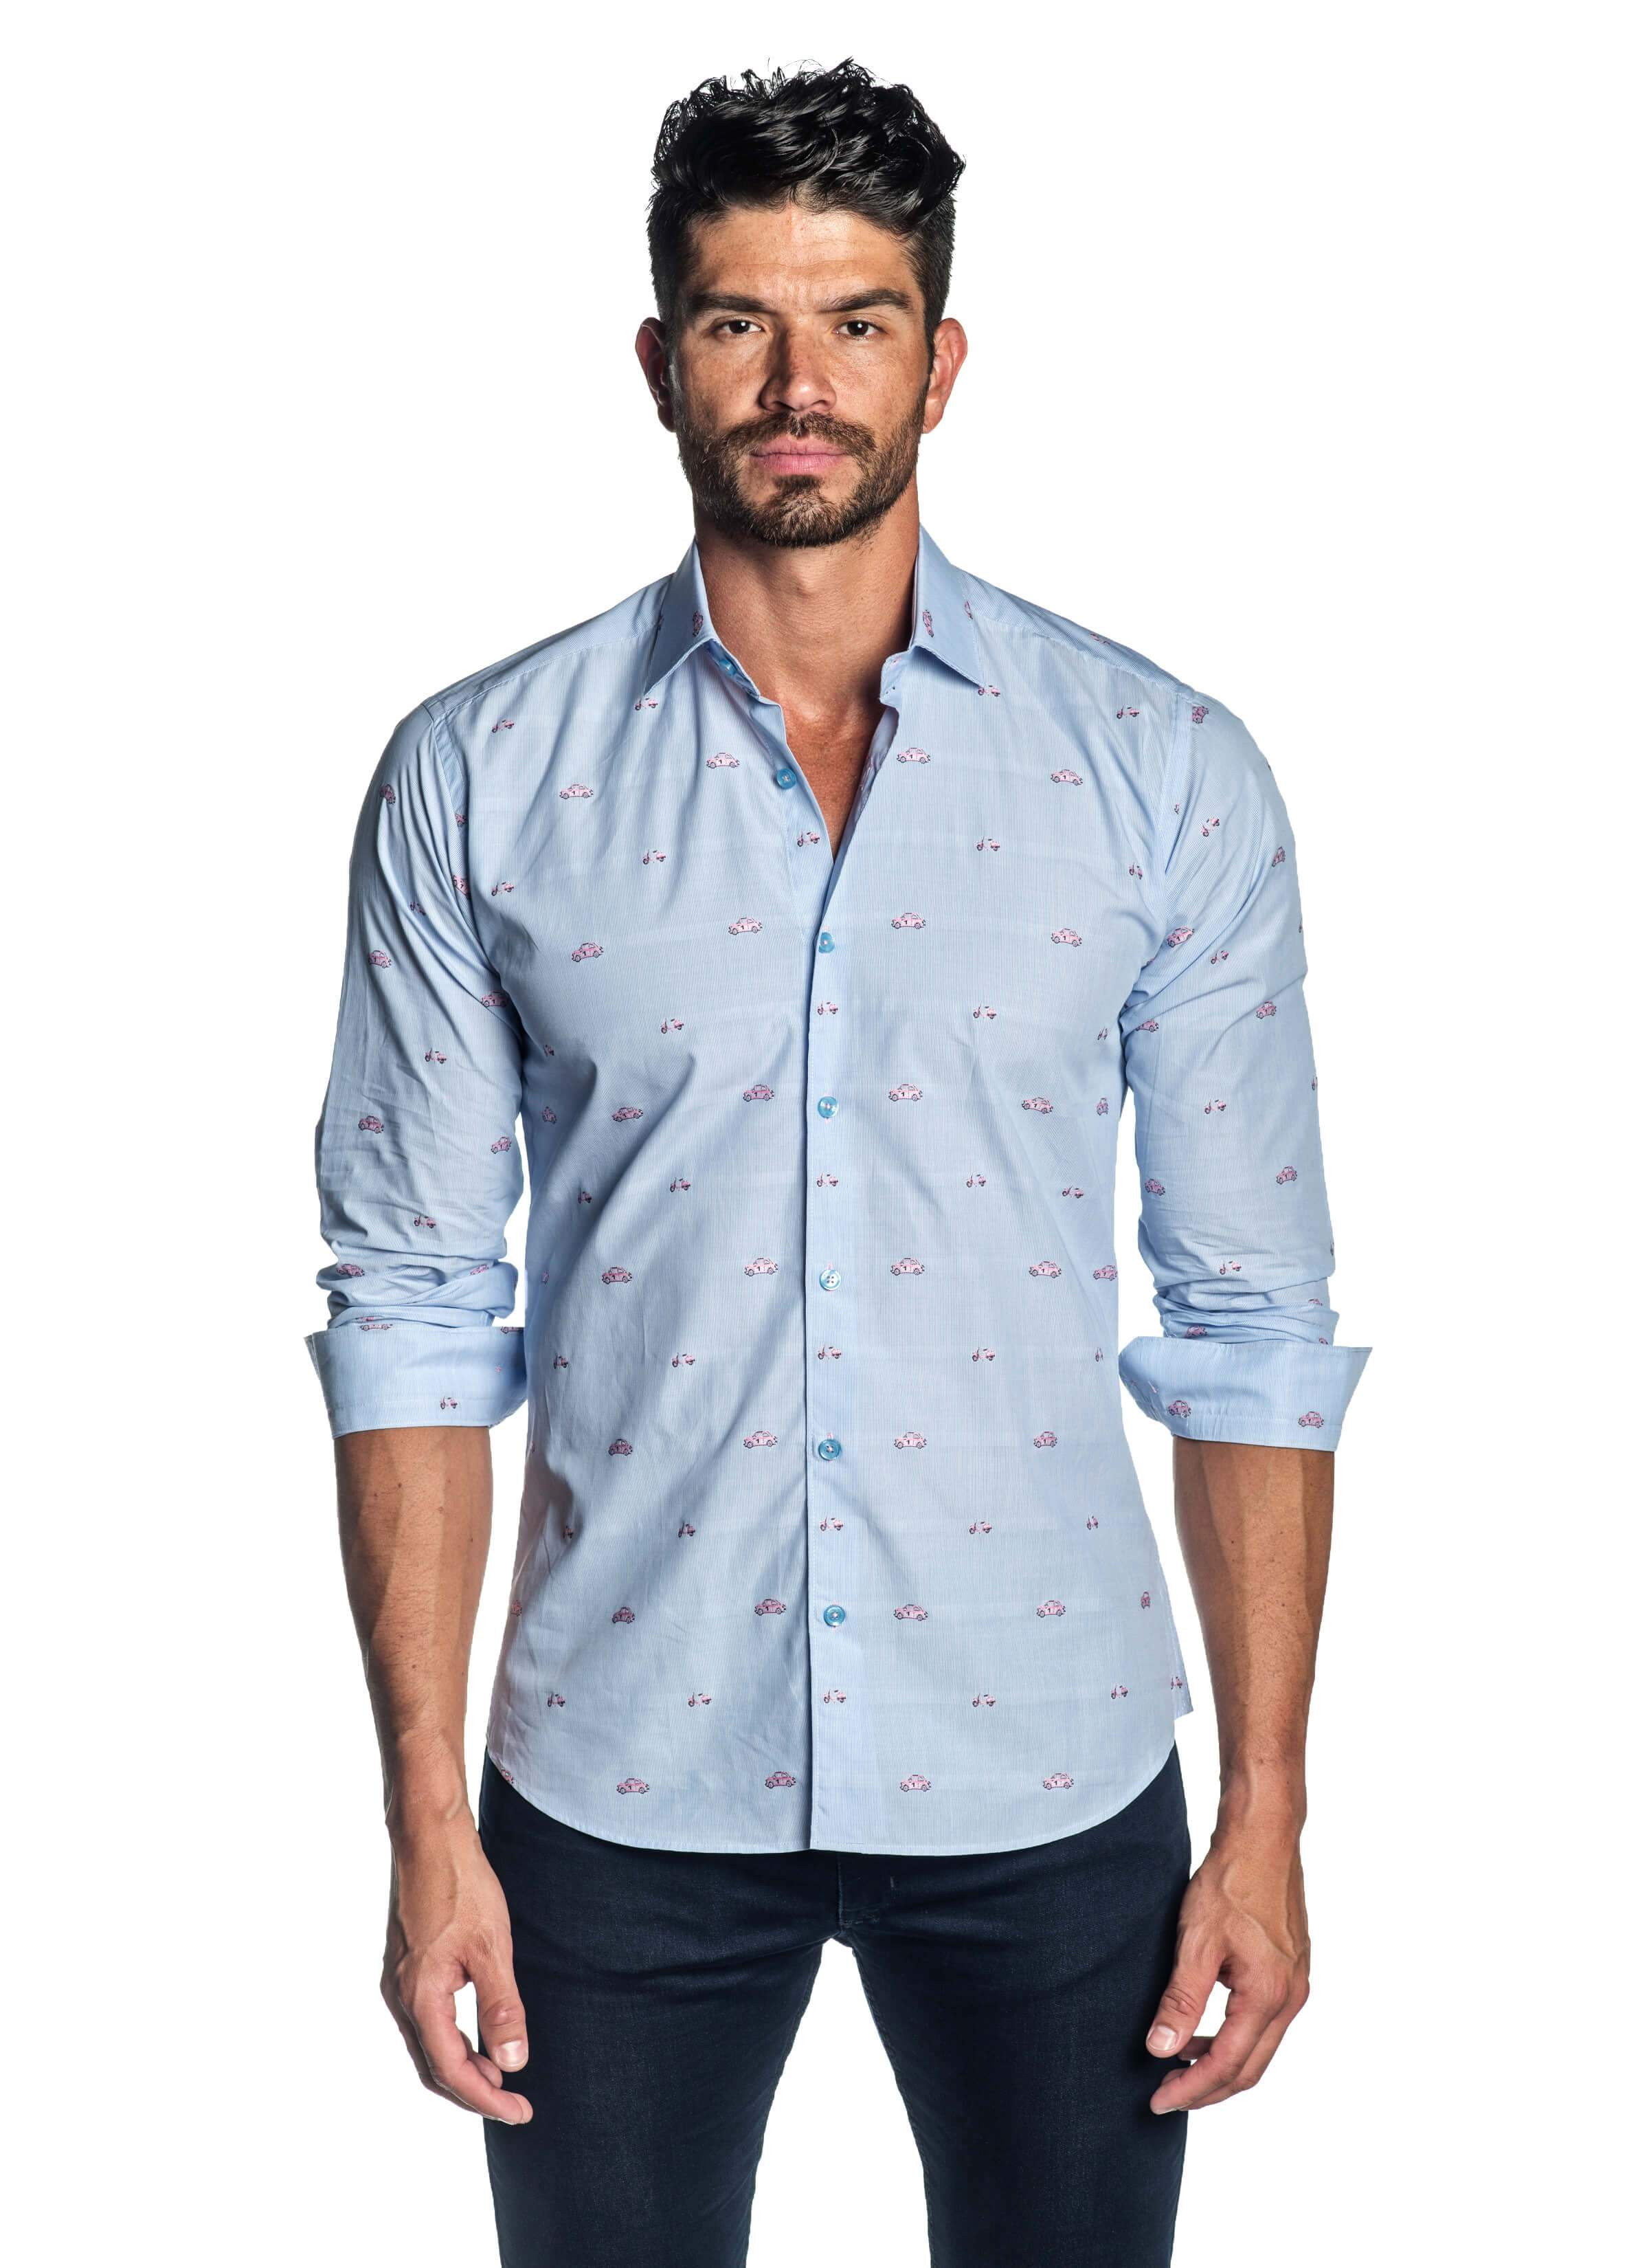 Light Blue and Pink Embroidered Cars and Scooters Print Shirt for Men - Front - T-2009 | Jared Lang